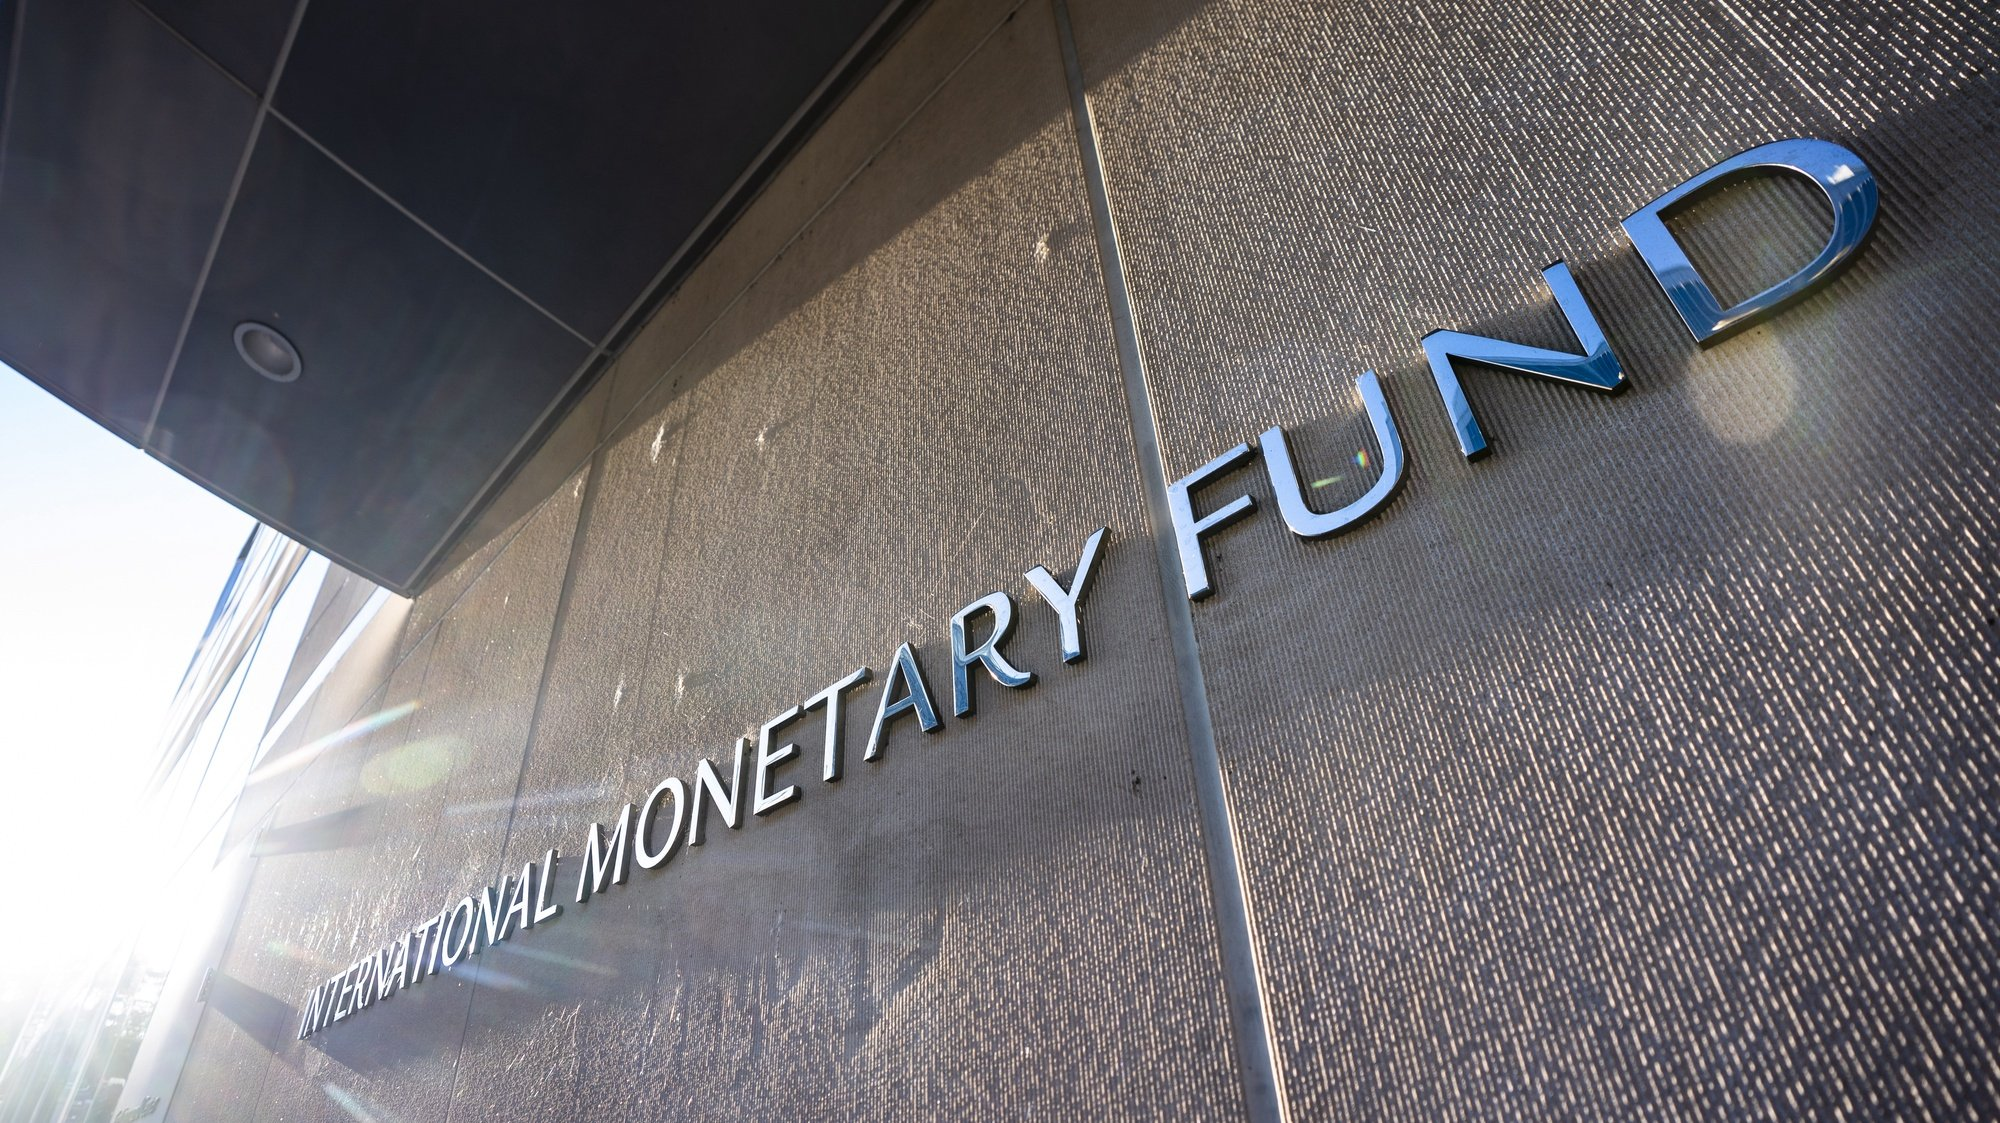 epa08743975 A sign for the International Monetary Fund (IMF) outside its headquarters in Washington, DC, USA, 14 October 2020. The IMF World Bank Group 2020 annual fall meeting has gone virtual due to the Coronavirus pandemic.  EPA/JIM LO SCALZO